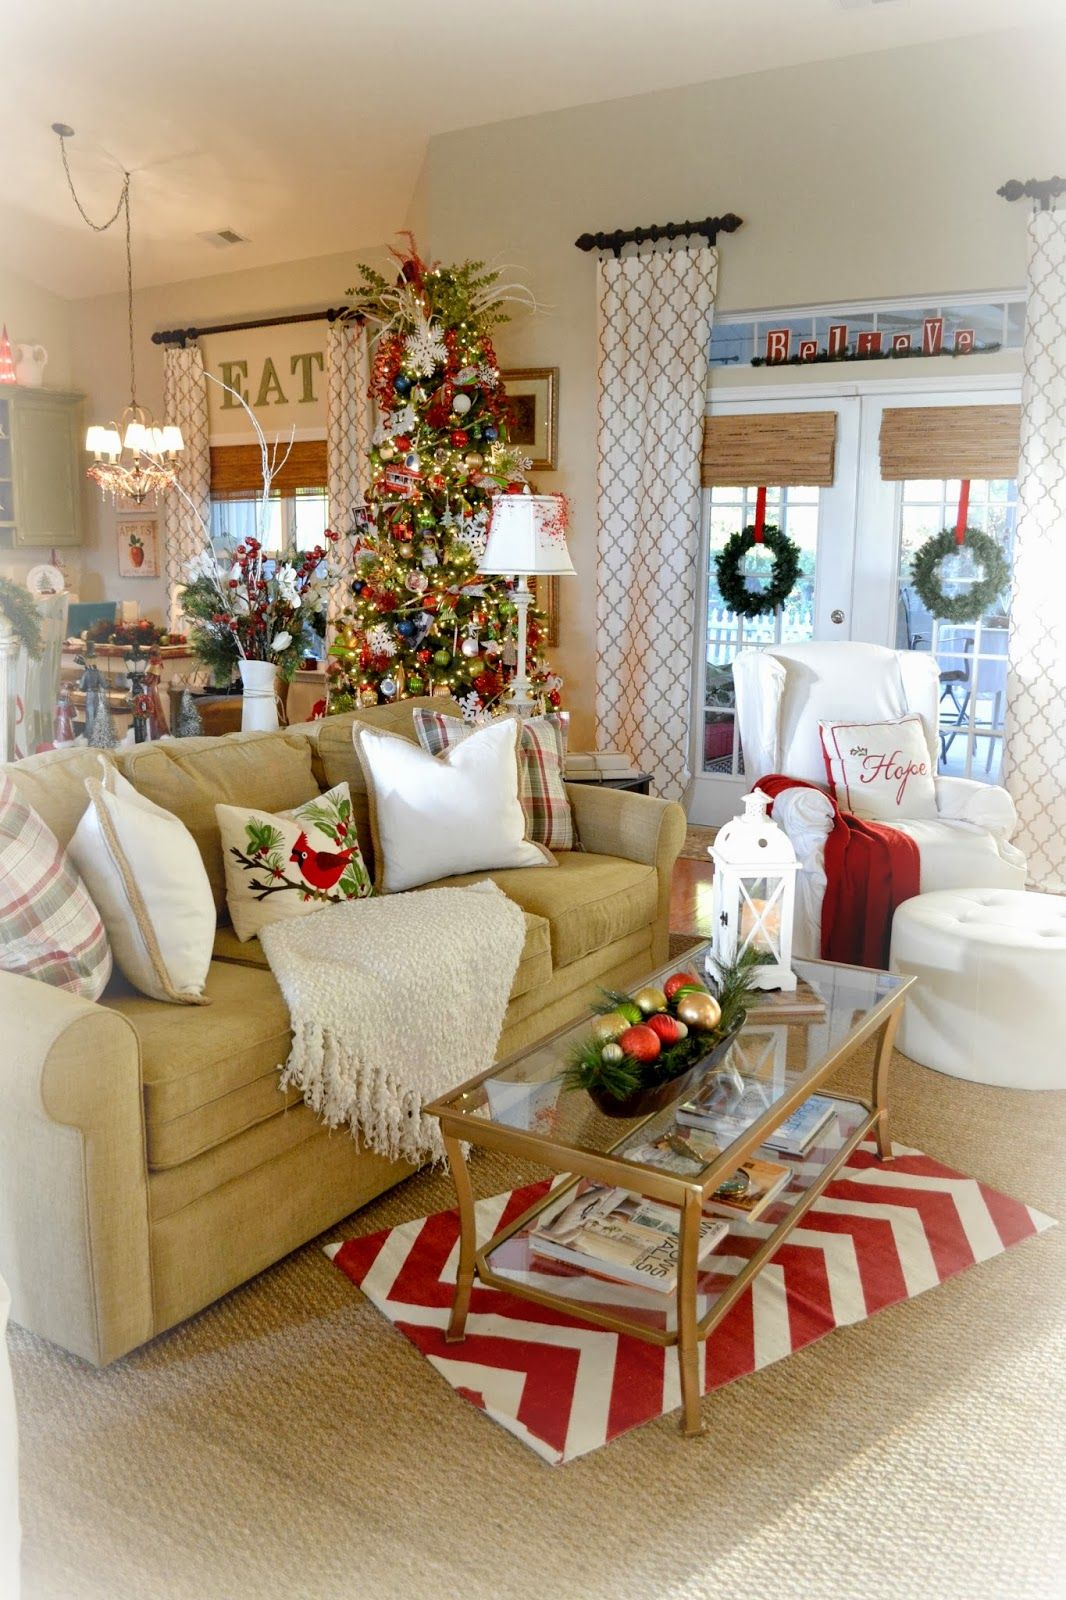 Kitchen Great Room Design: Adventures In Decorating: Our Christmas Great Room And